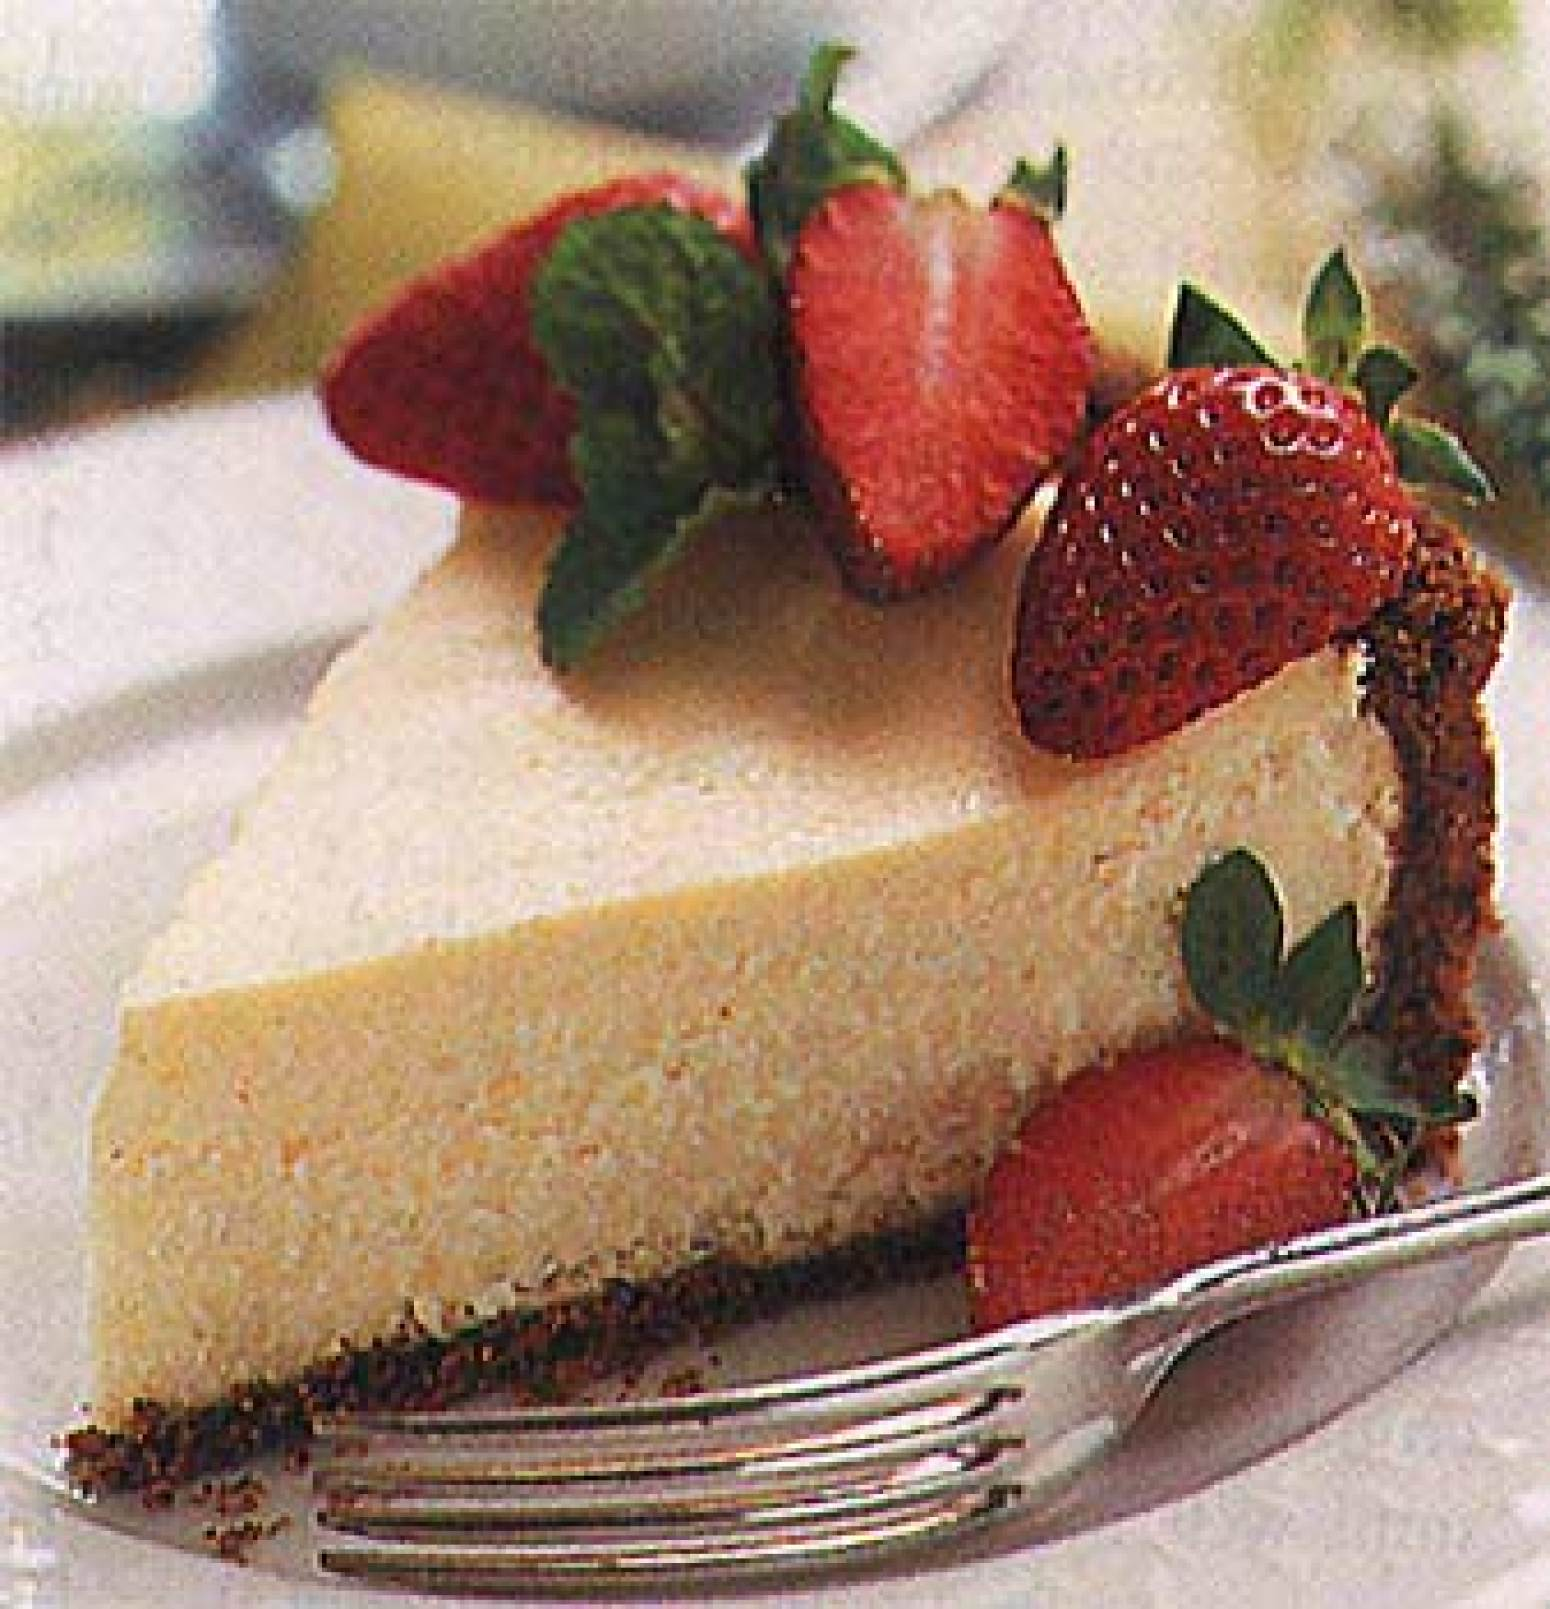 Strawberry Cheesecake with Gingersnap Crust Recipe | Epicurious.com ...